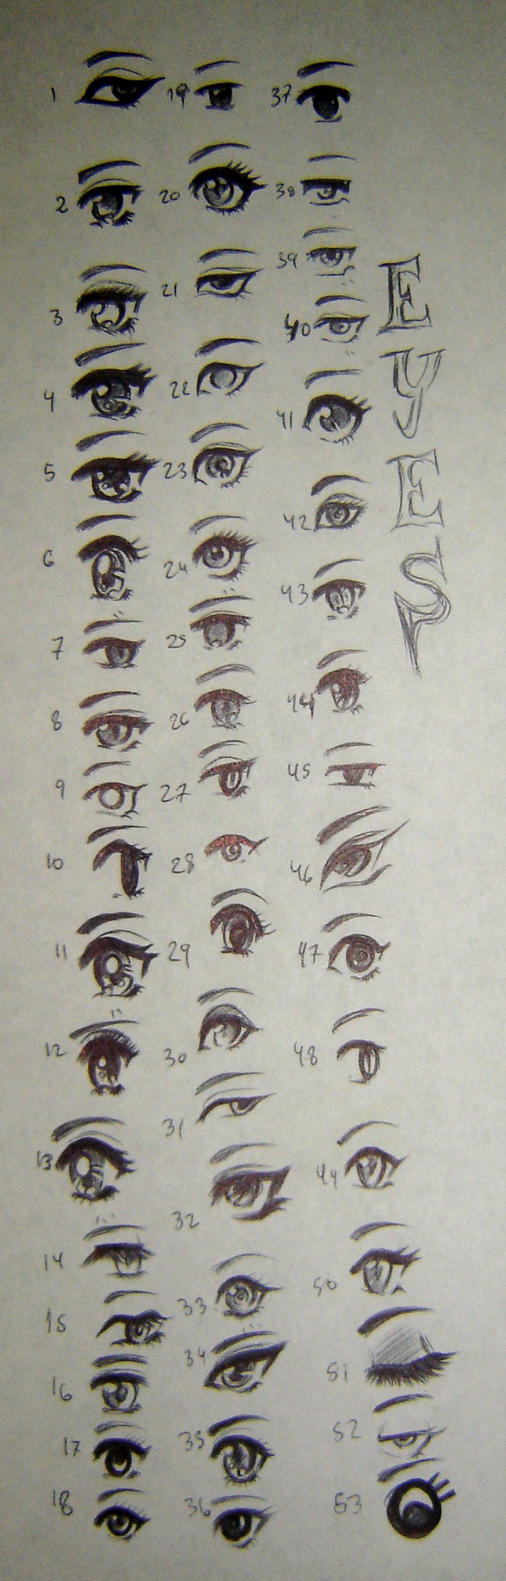 How to Draw an Anime Eye Crying 7 Steps with   wikiHow